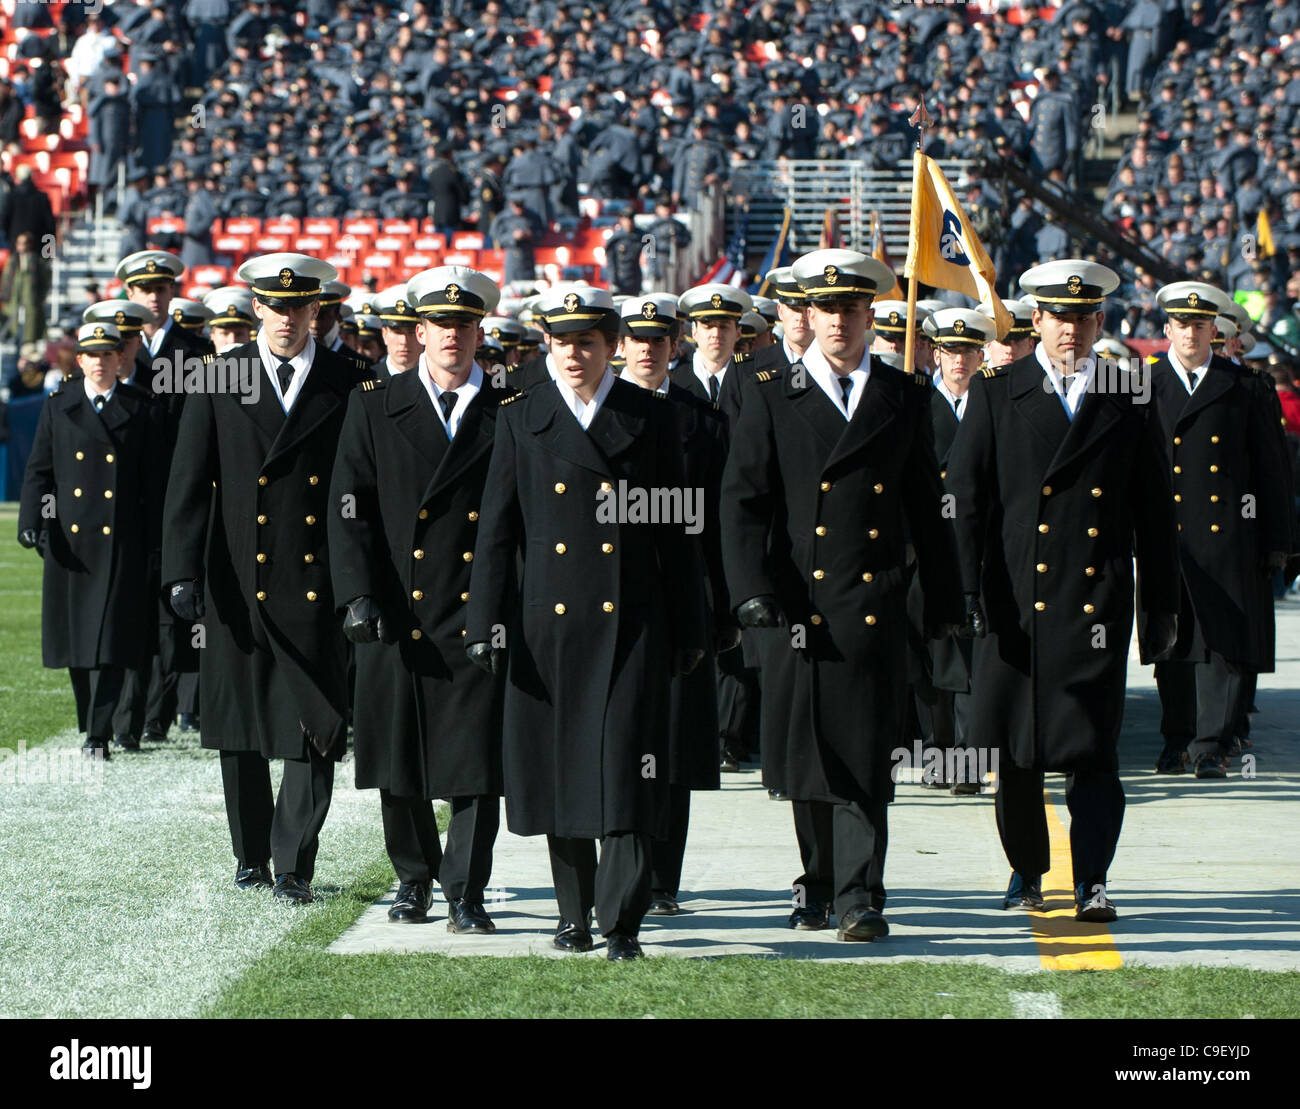 What are the United States Naval ranks?